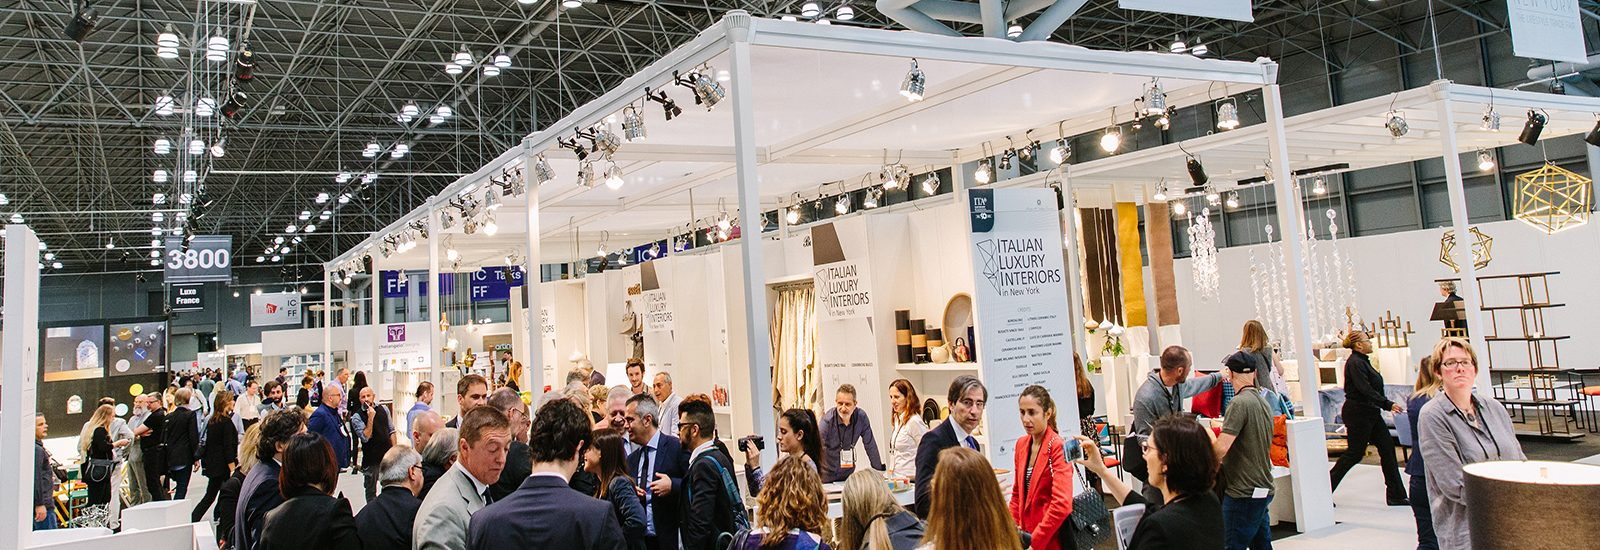 icff 2017 Everything You Need to Know about ICFF 2017 Everything You Need to Know About ICFF 2017 3